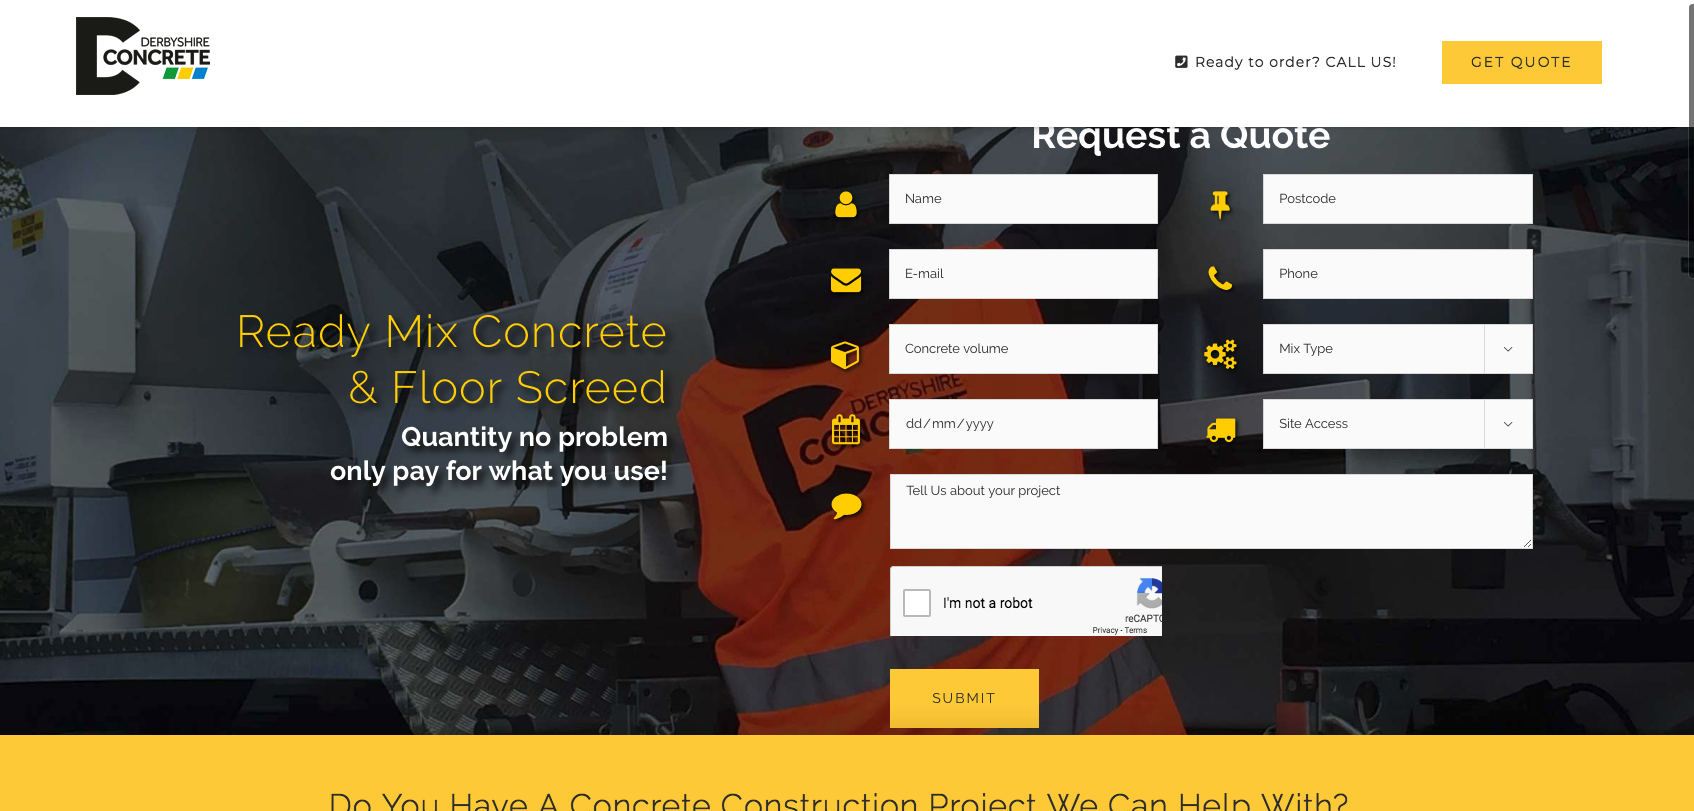 Derbyshire concrete landing page web build